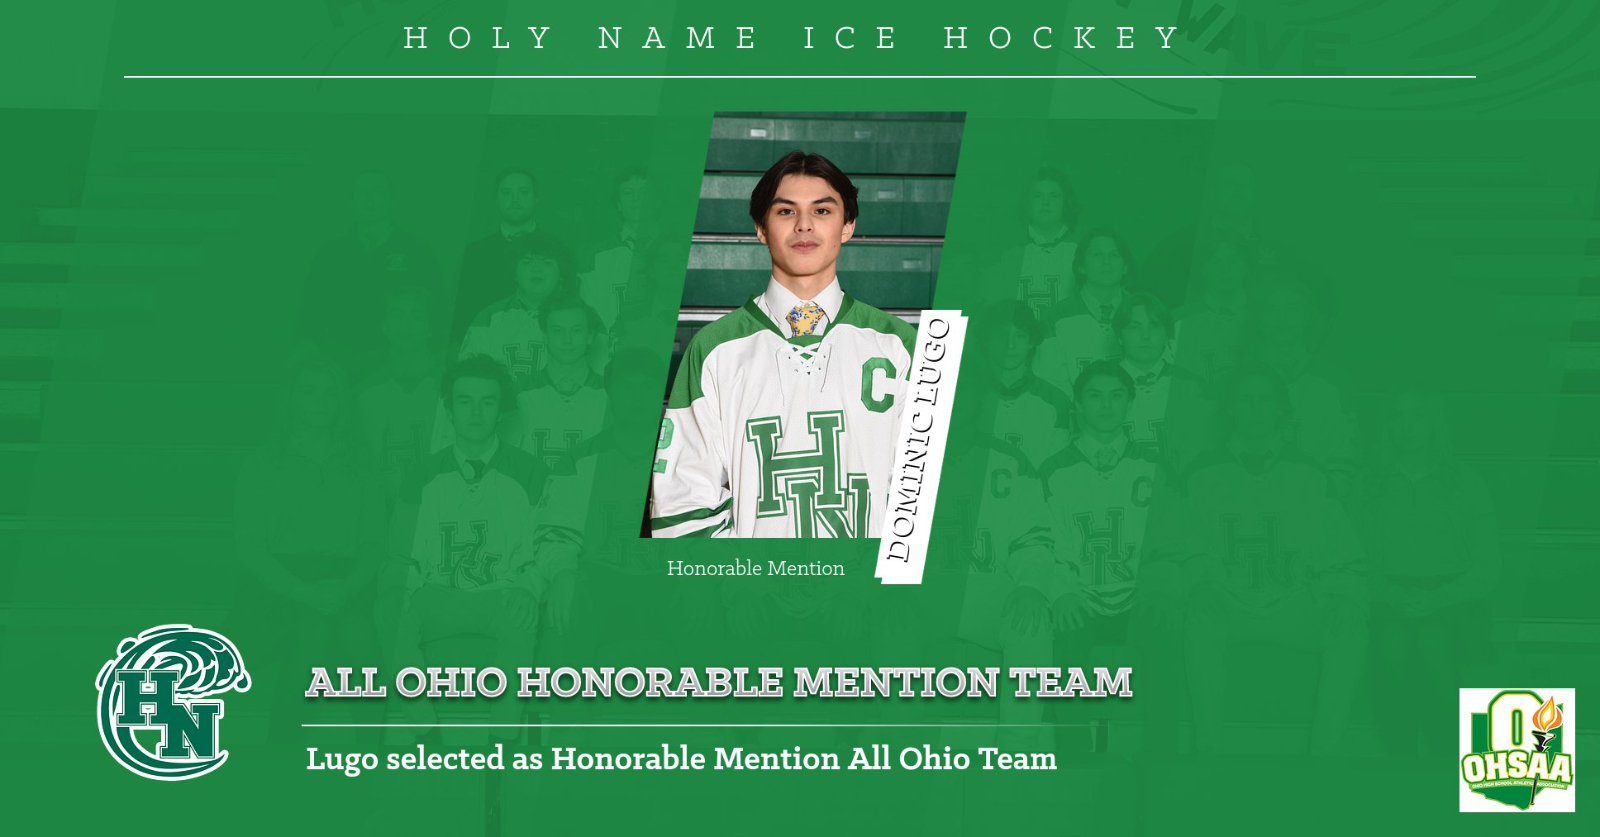 Dominic Lugo – All Ohio Honorable Mention